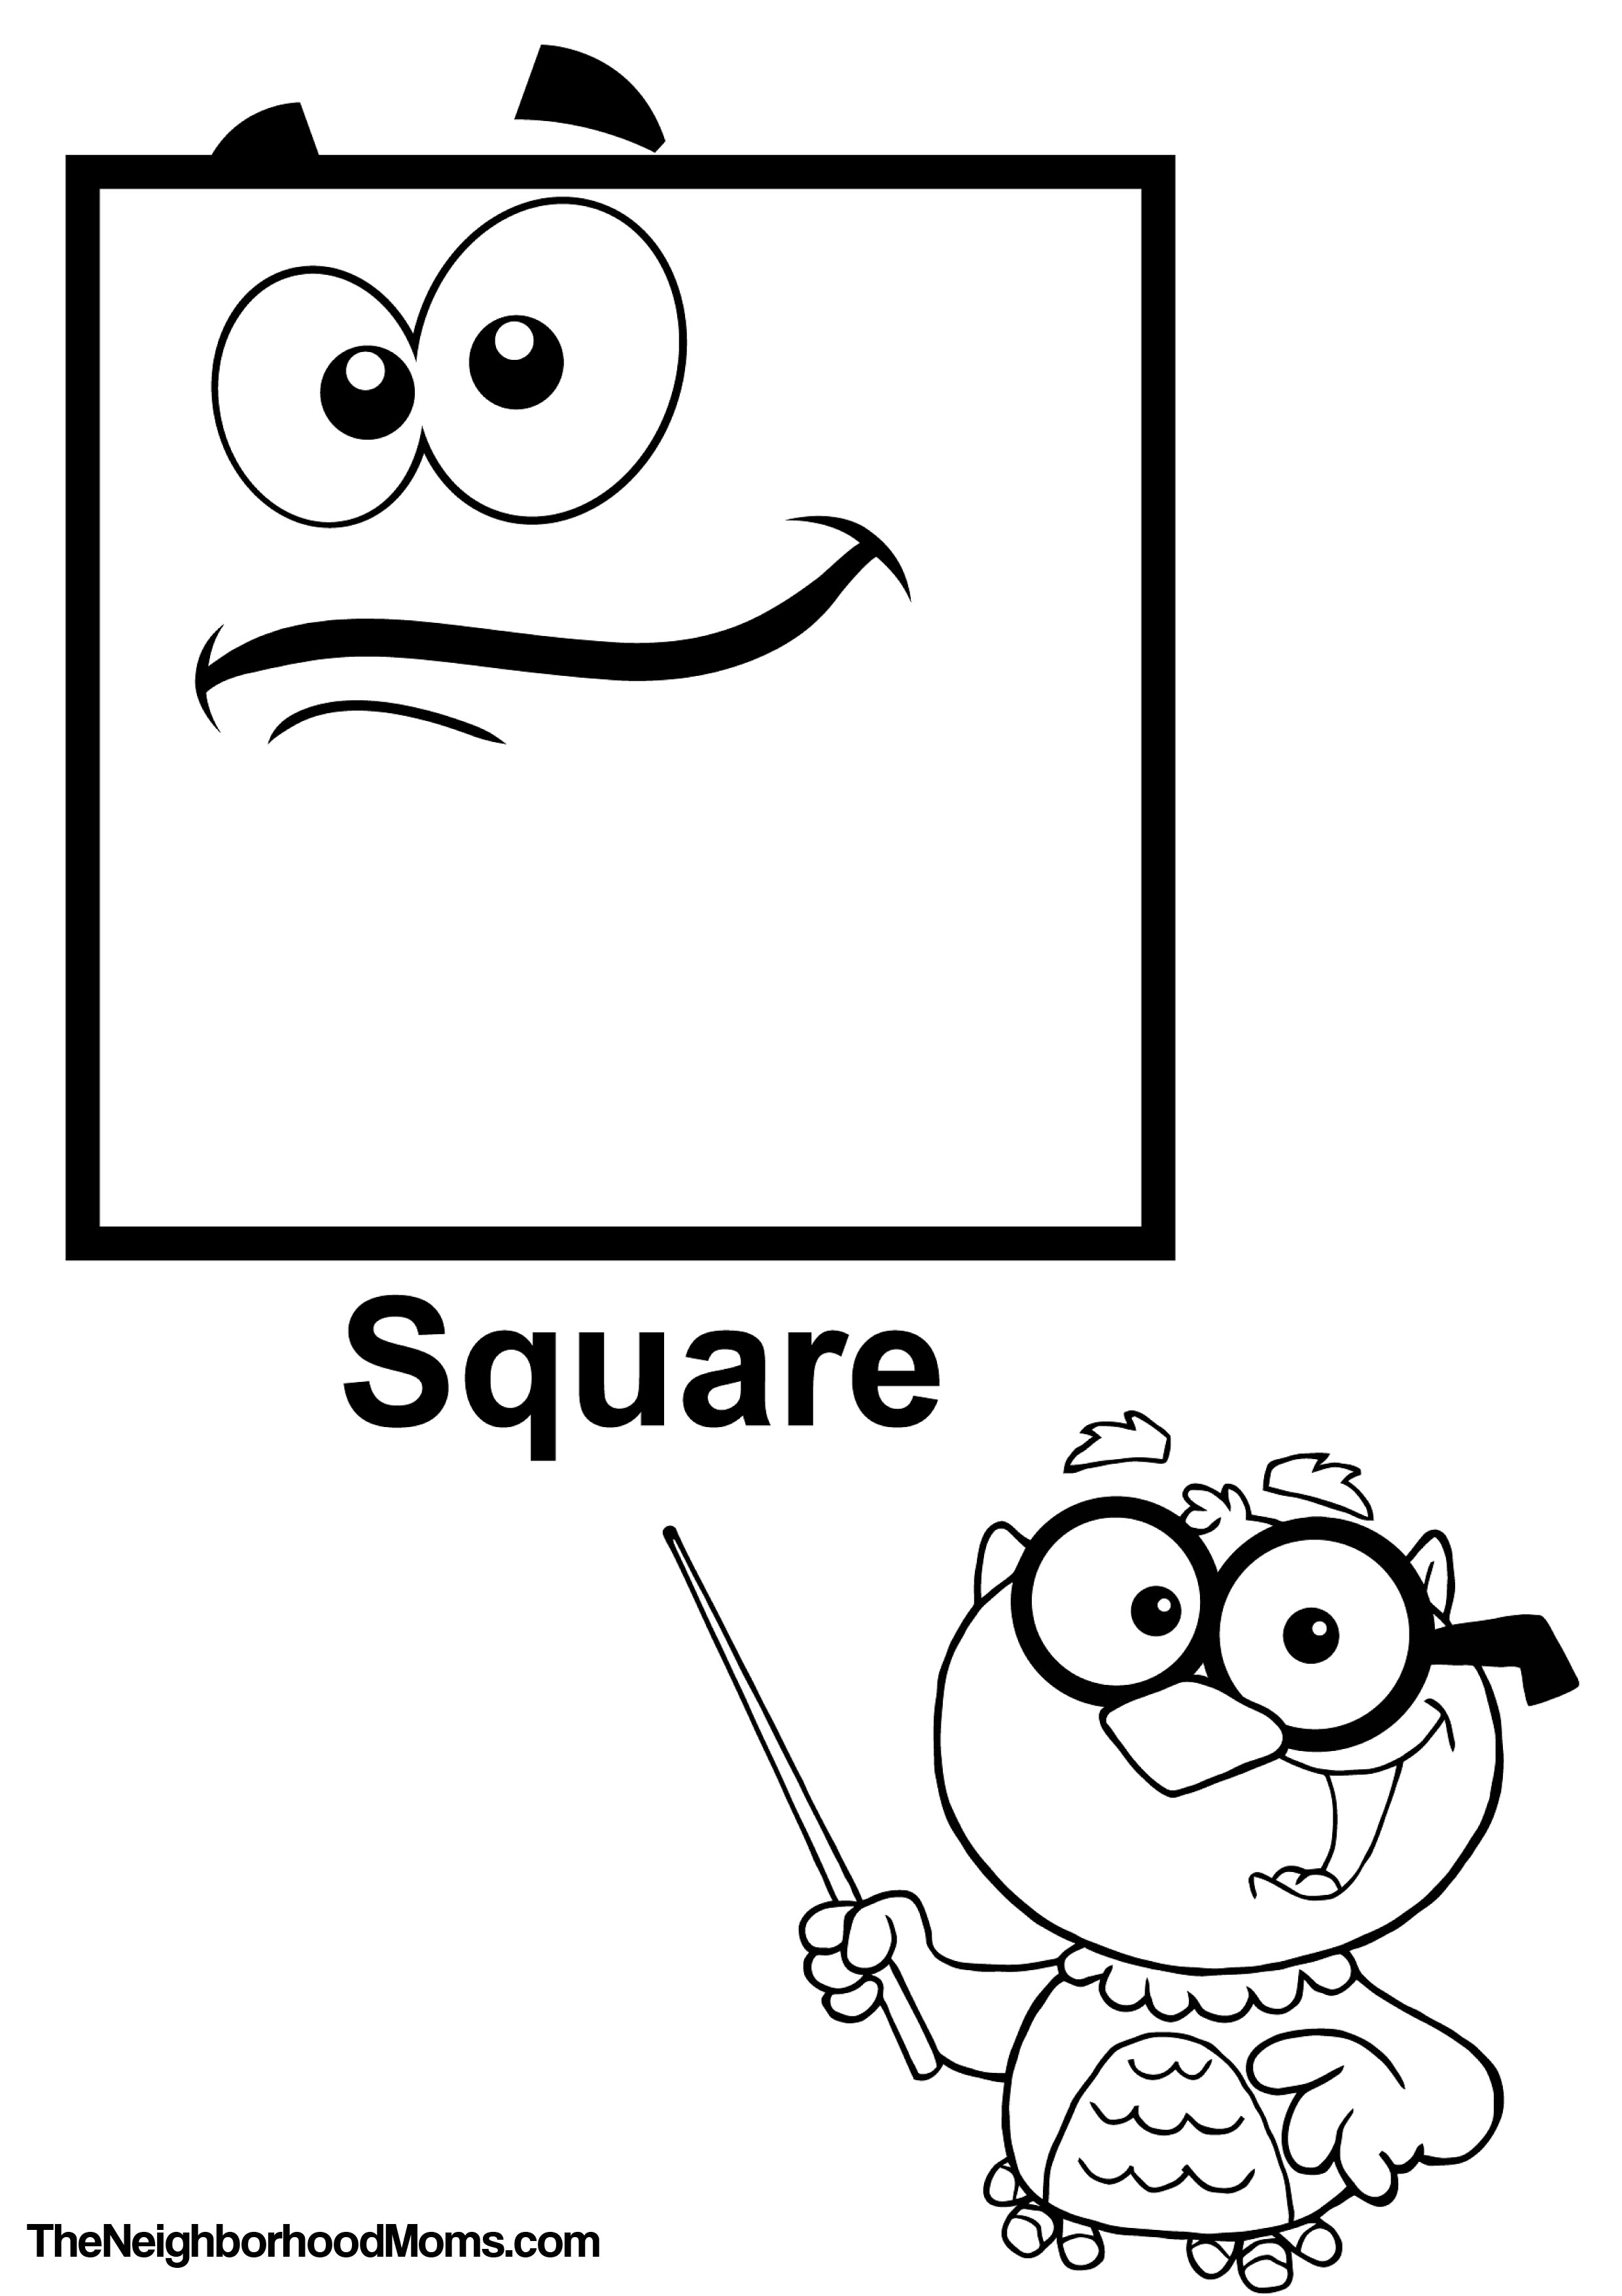 square coloring pages - 1